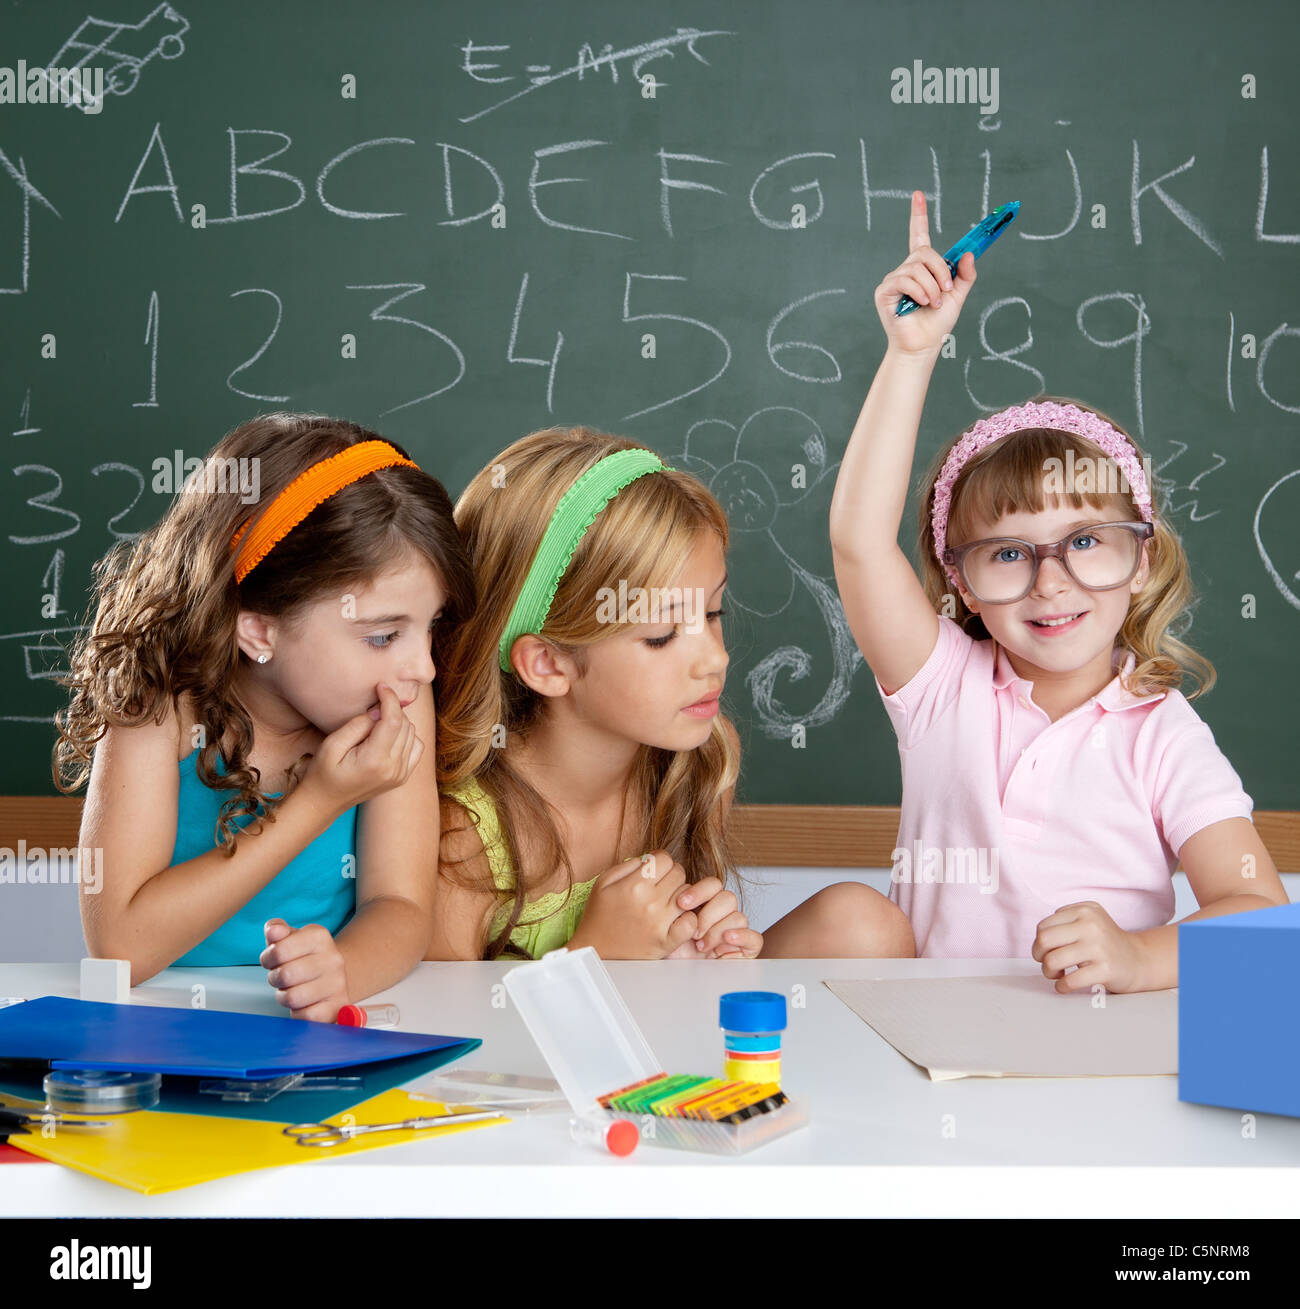 boring student with clever children girl raising hand finger at school classroom - Stock Image